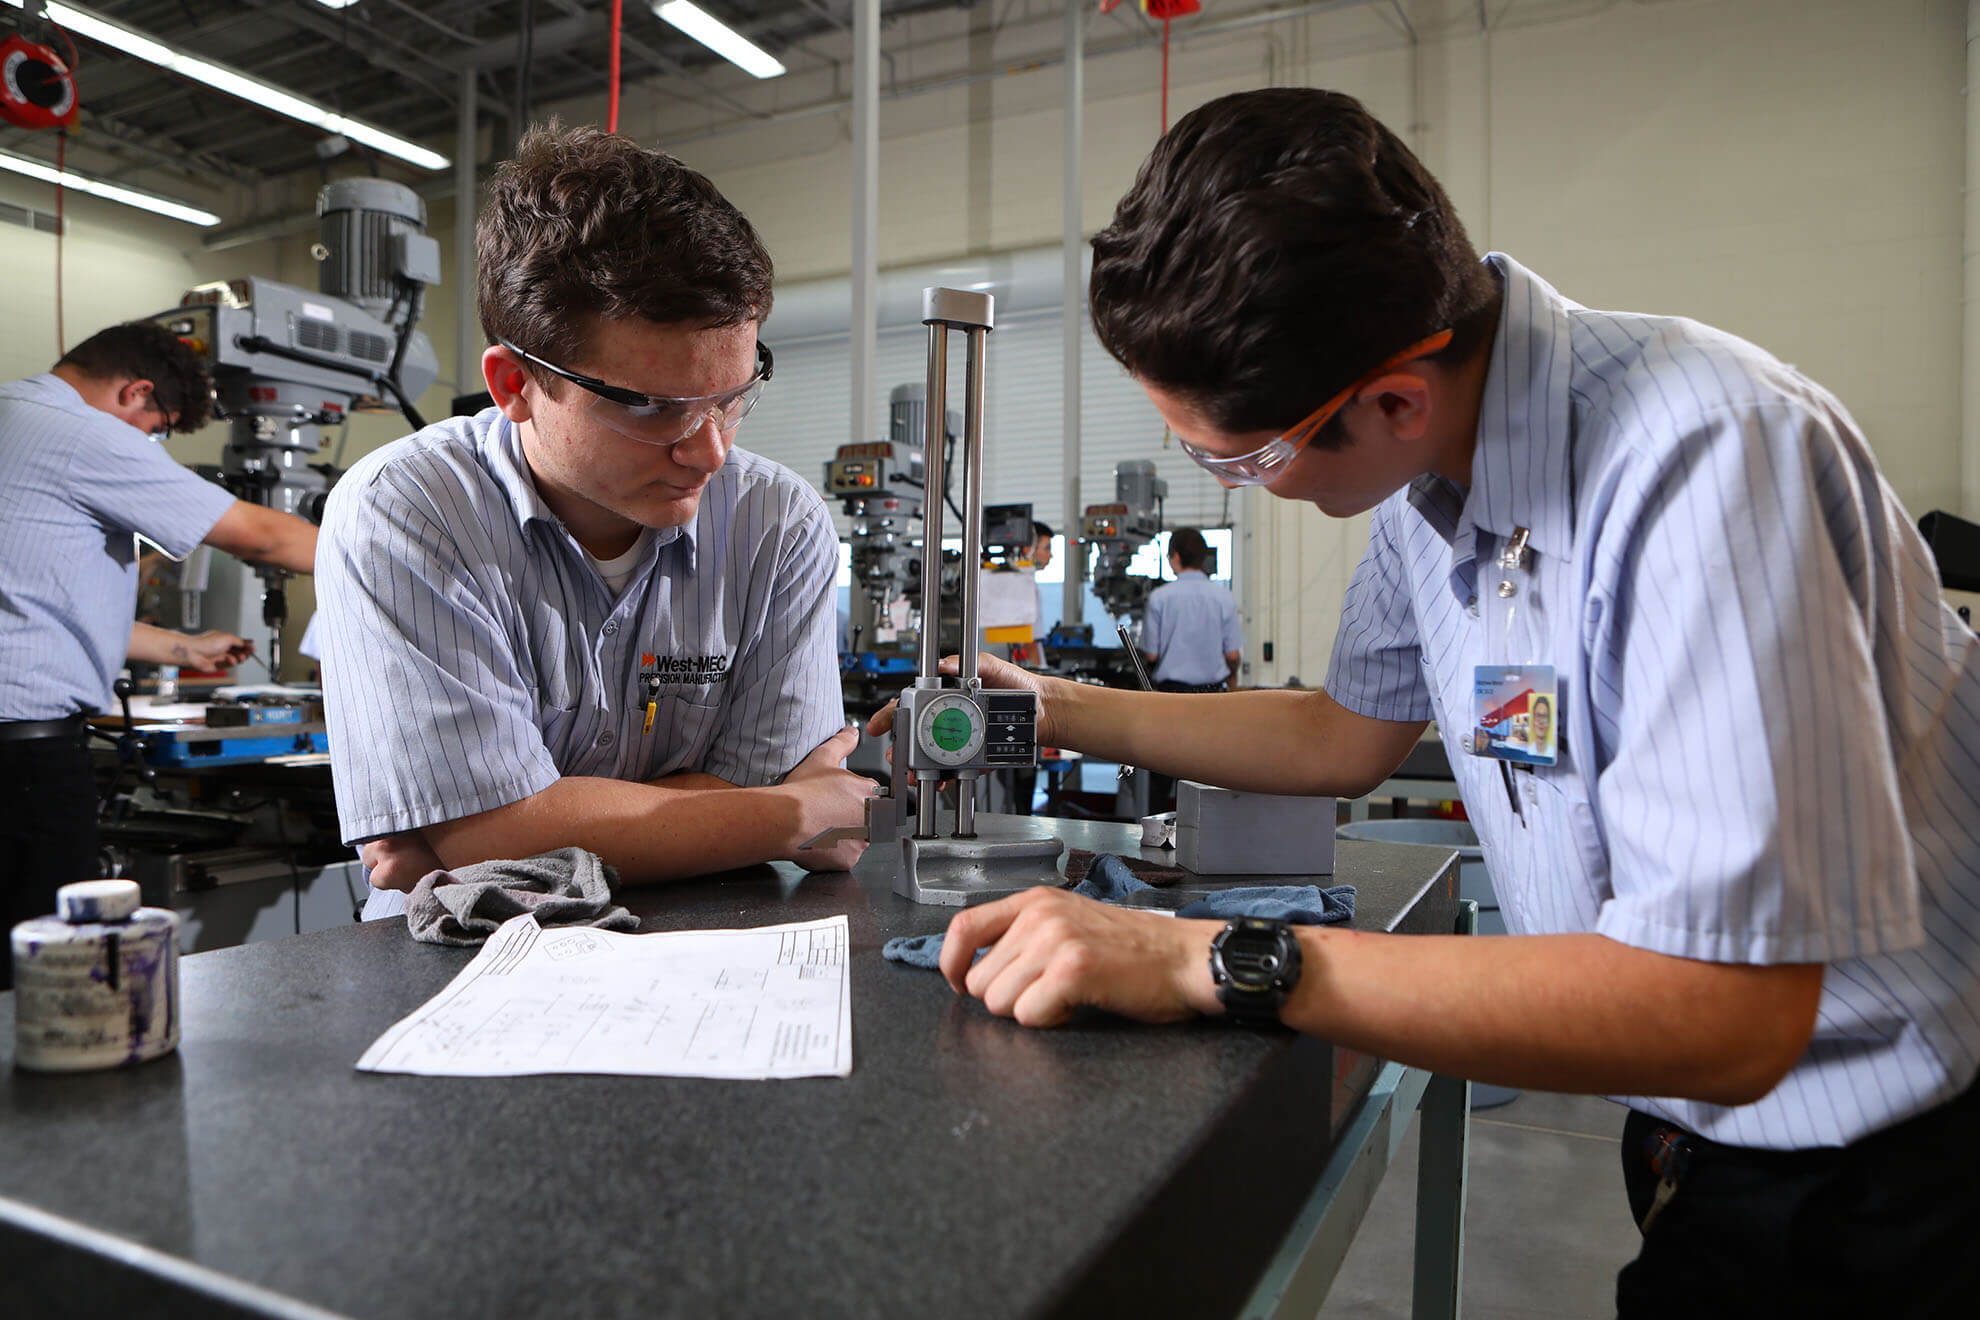 Precision Machining Students